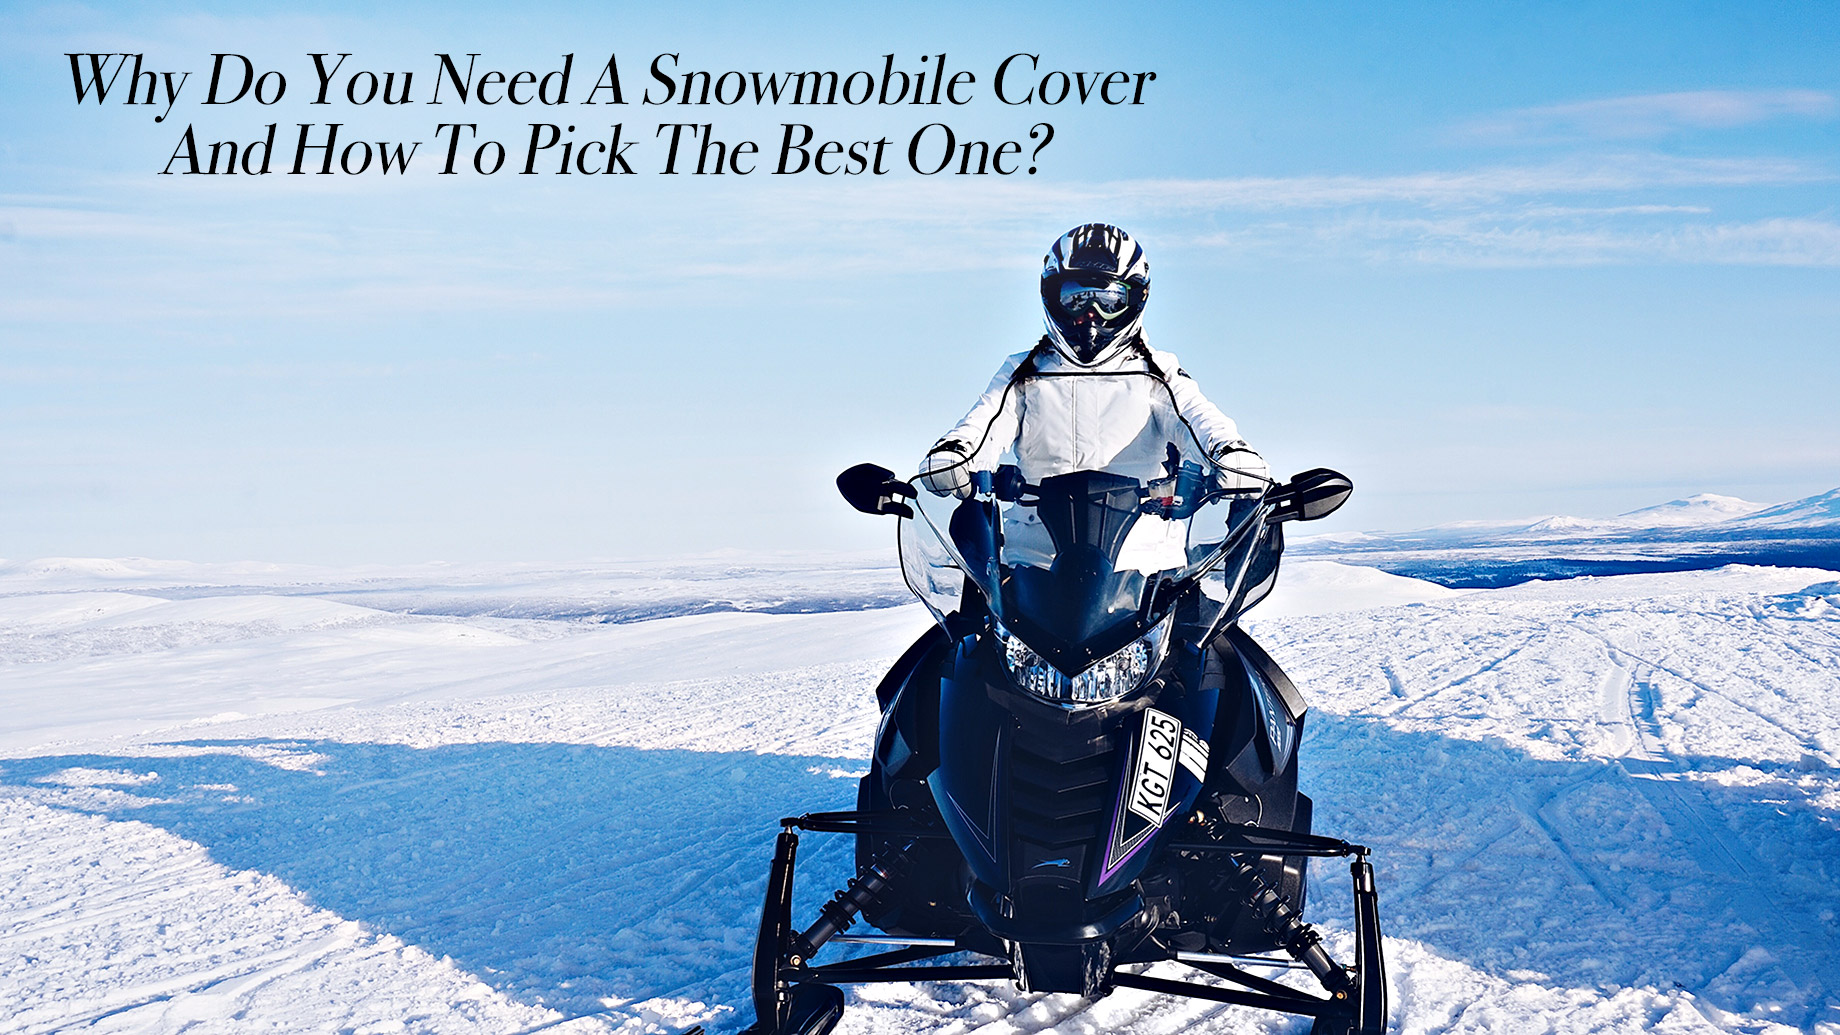 Why Do You Need A Snowmobile Cover And How To Pick The Best One?